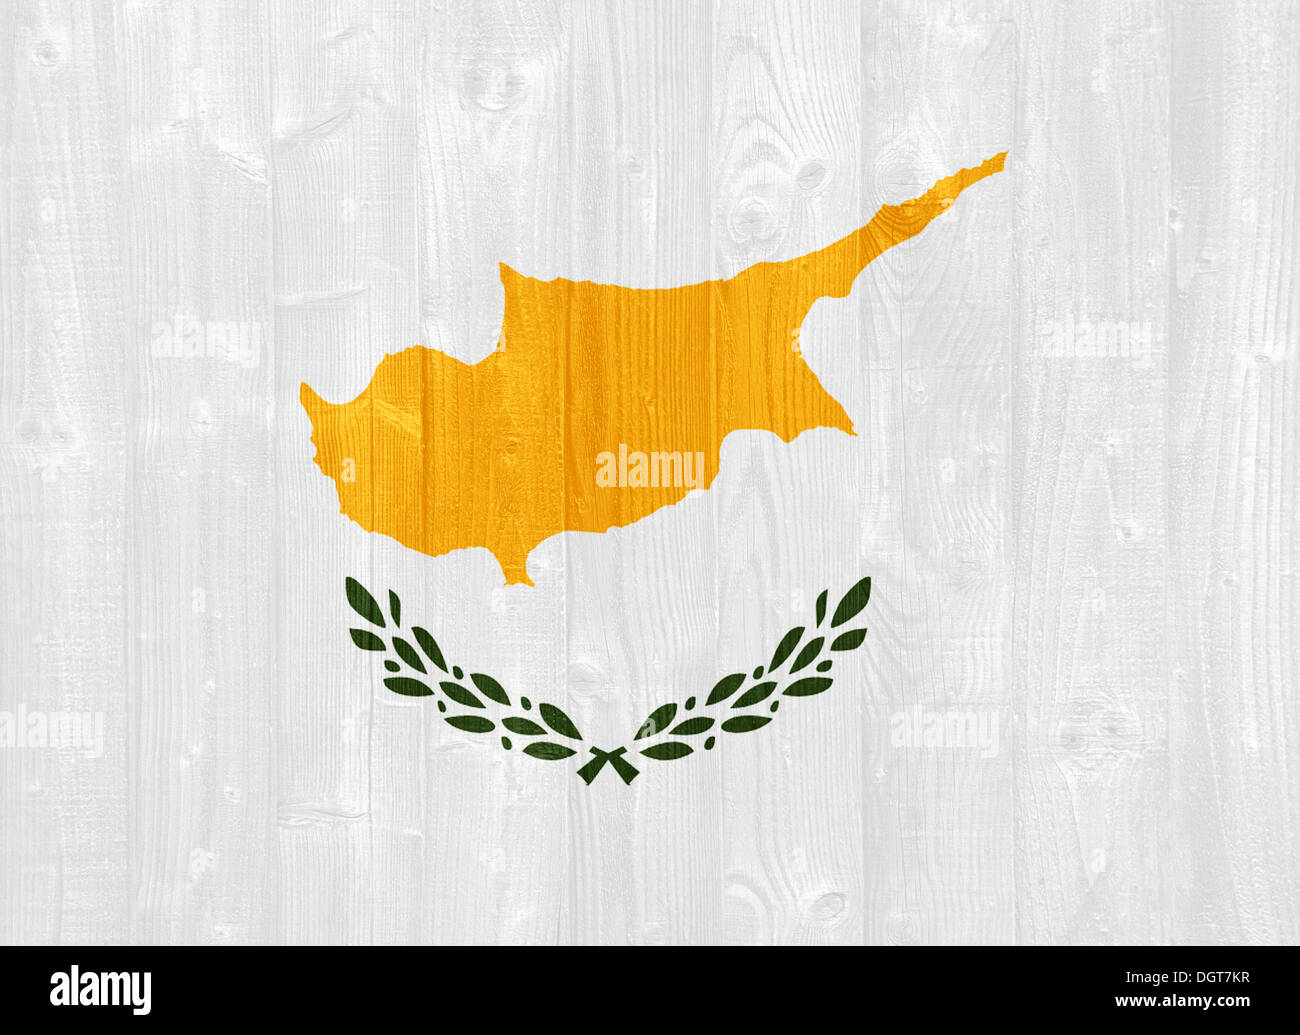 gorgeous Cyprus flag painted on a wood plank texture - Stock Image